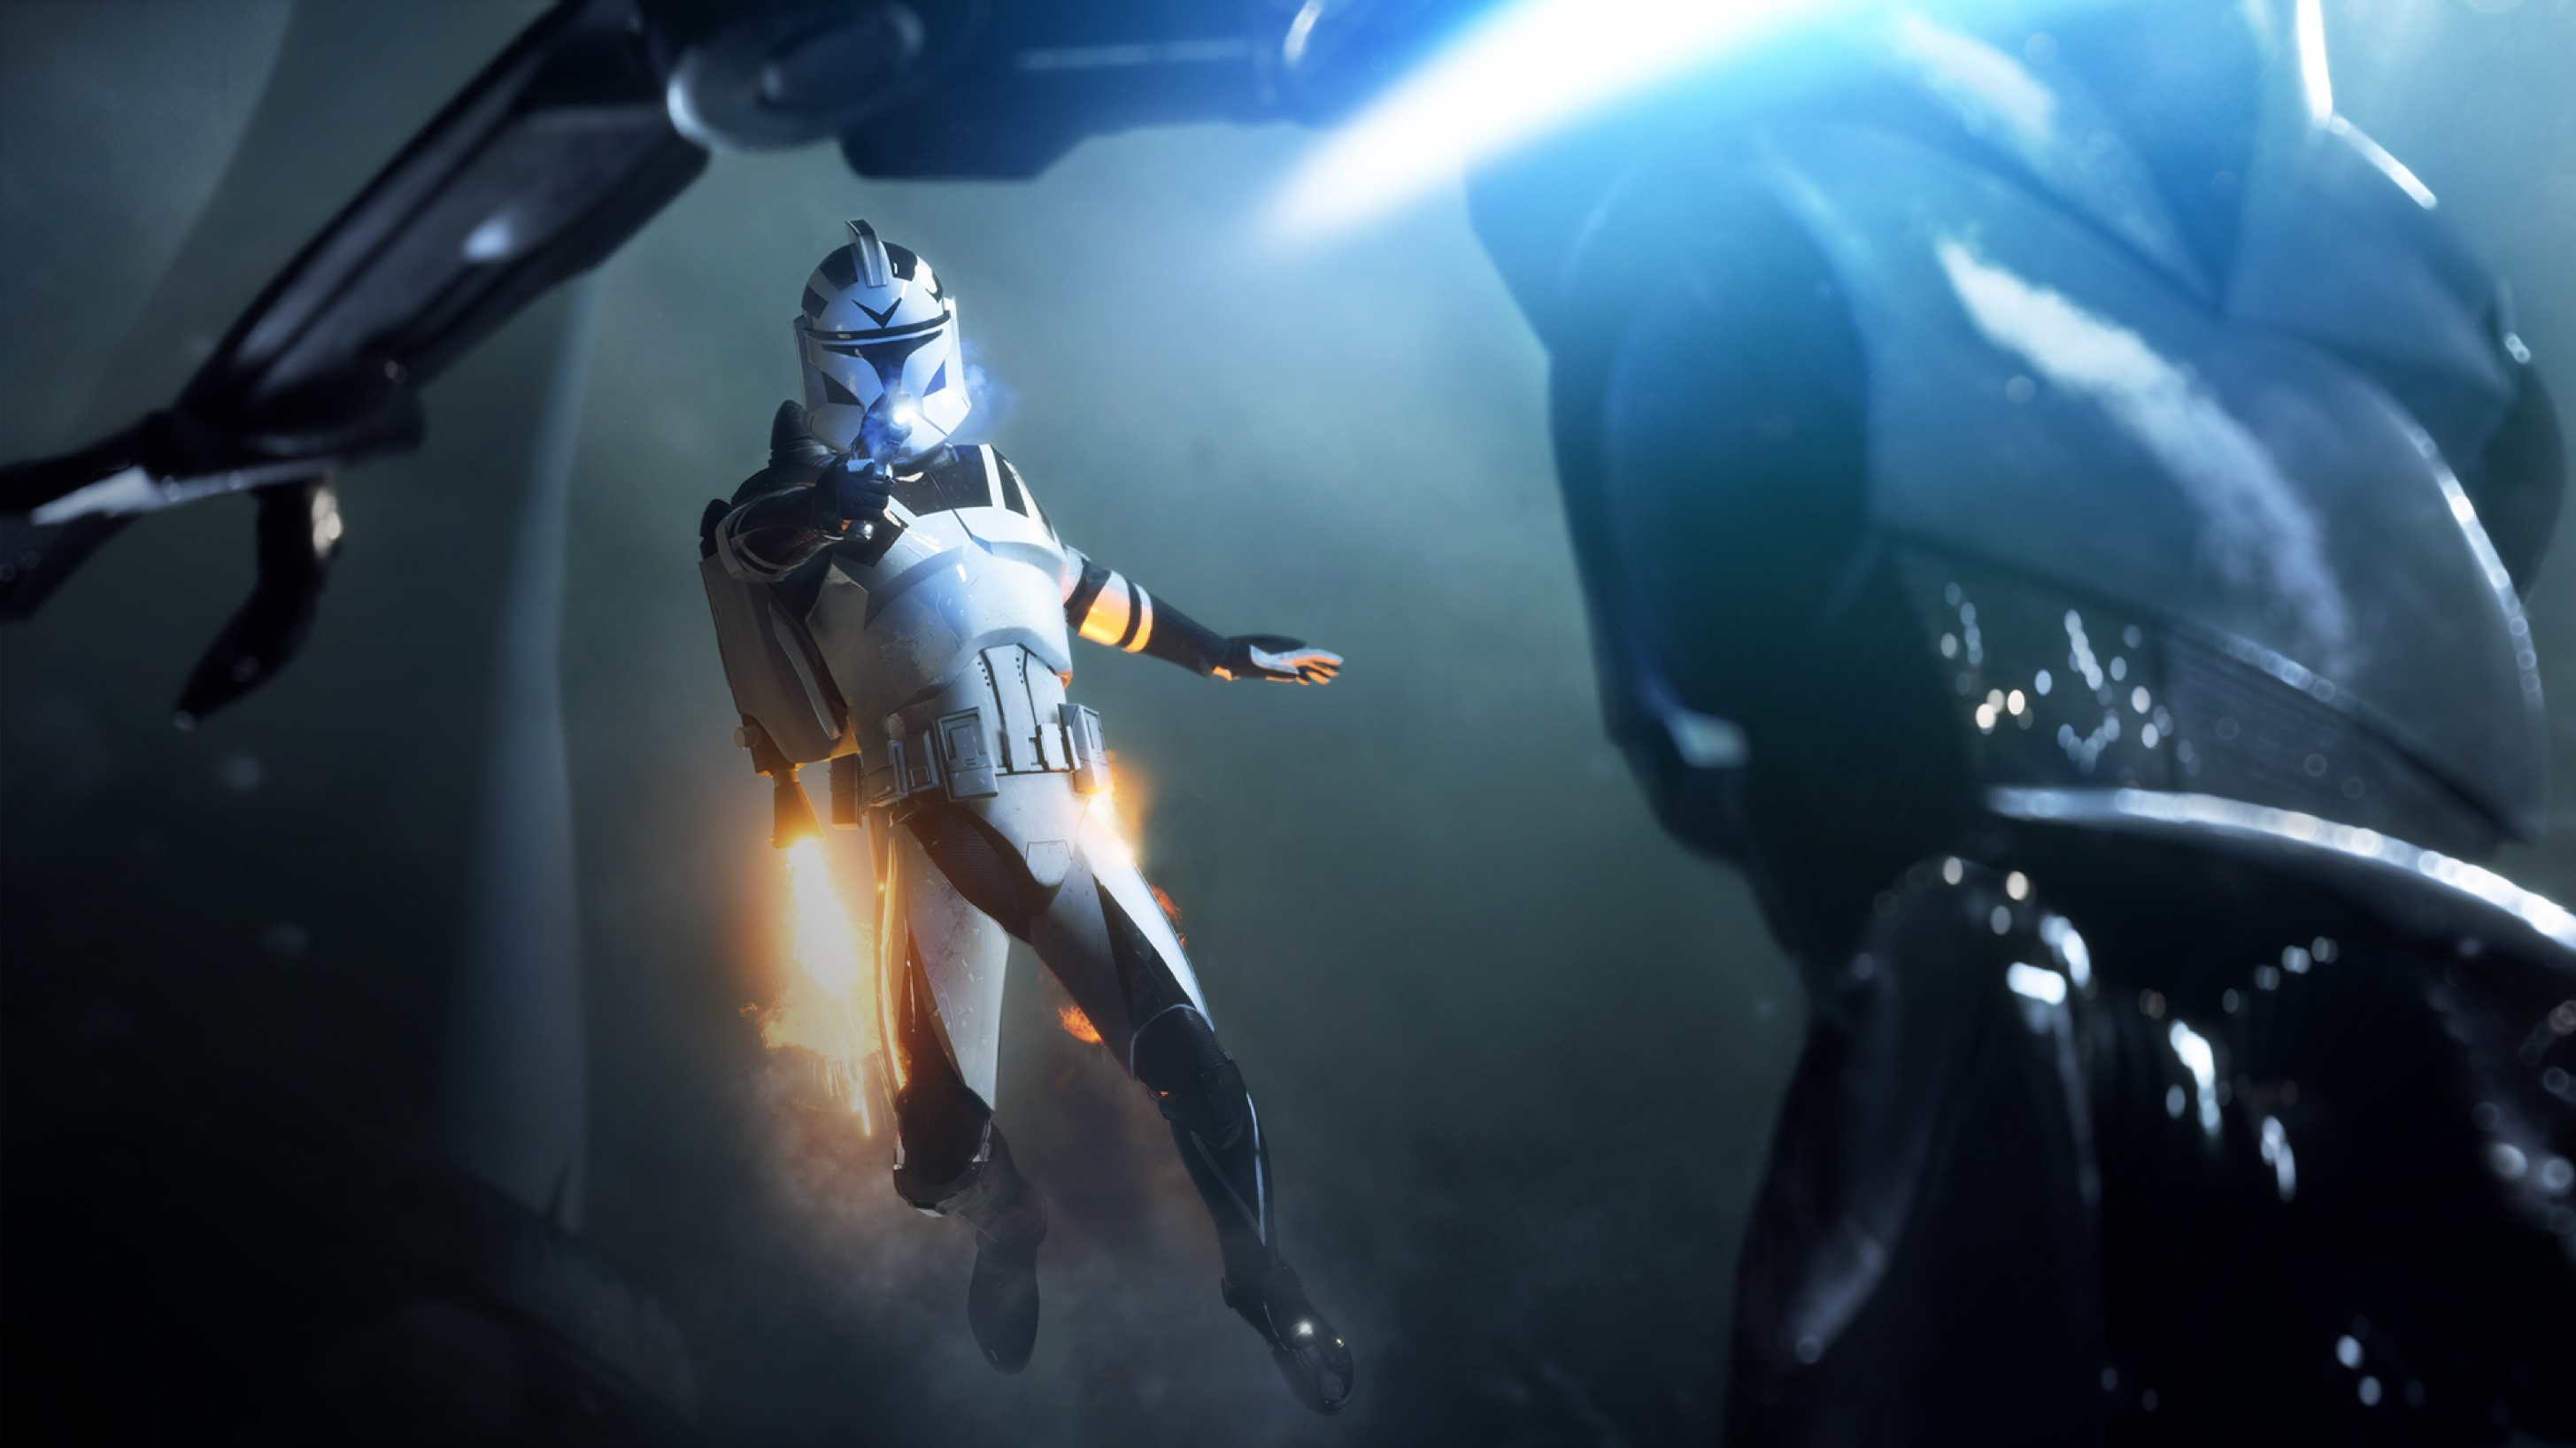 star-wars-ea-battlefront-2-wallpaper-hd-hi-res-12.jpg - Star Wars: Battlefront 2 (2017)